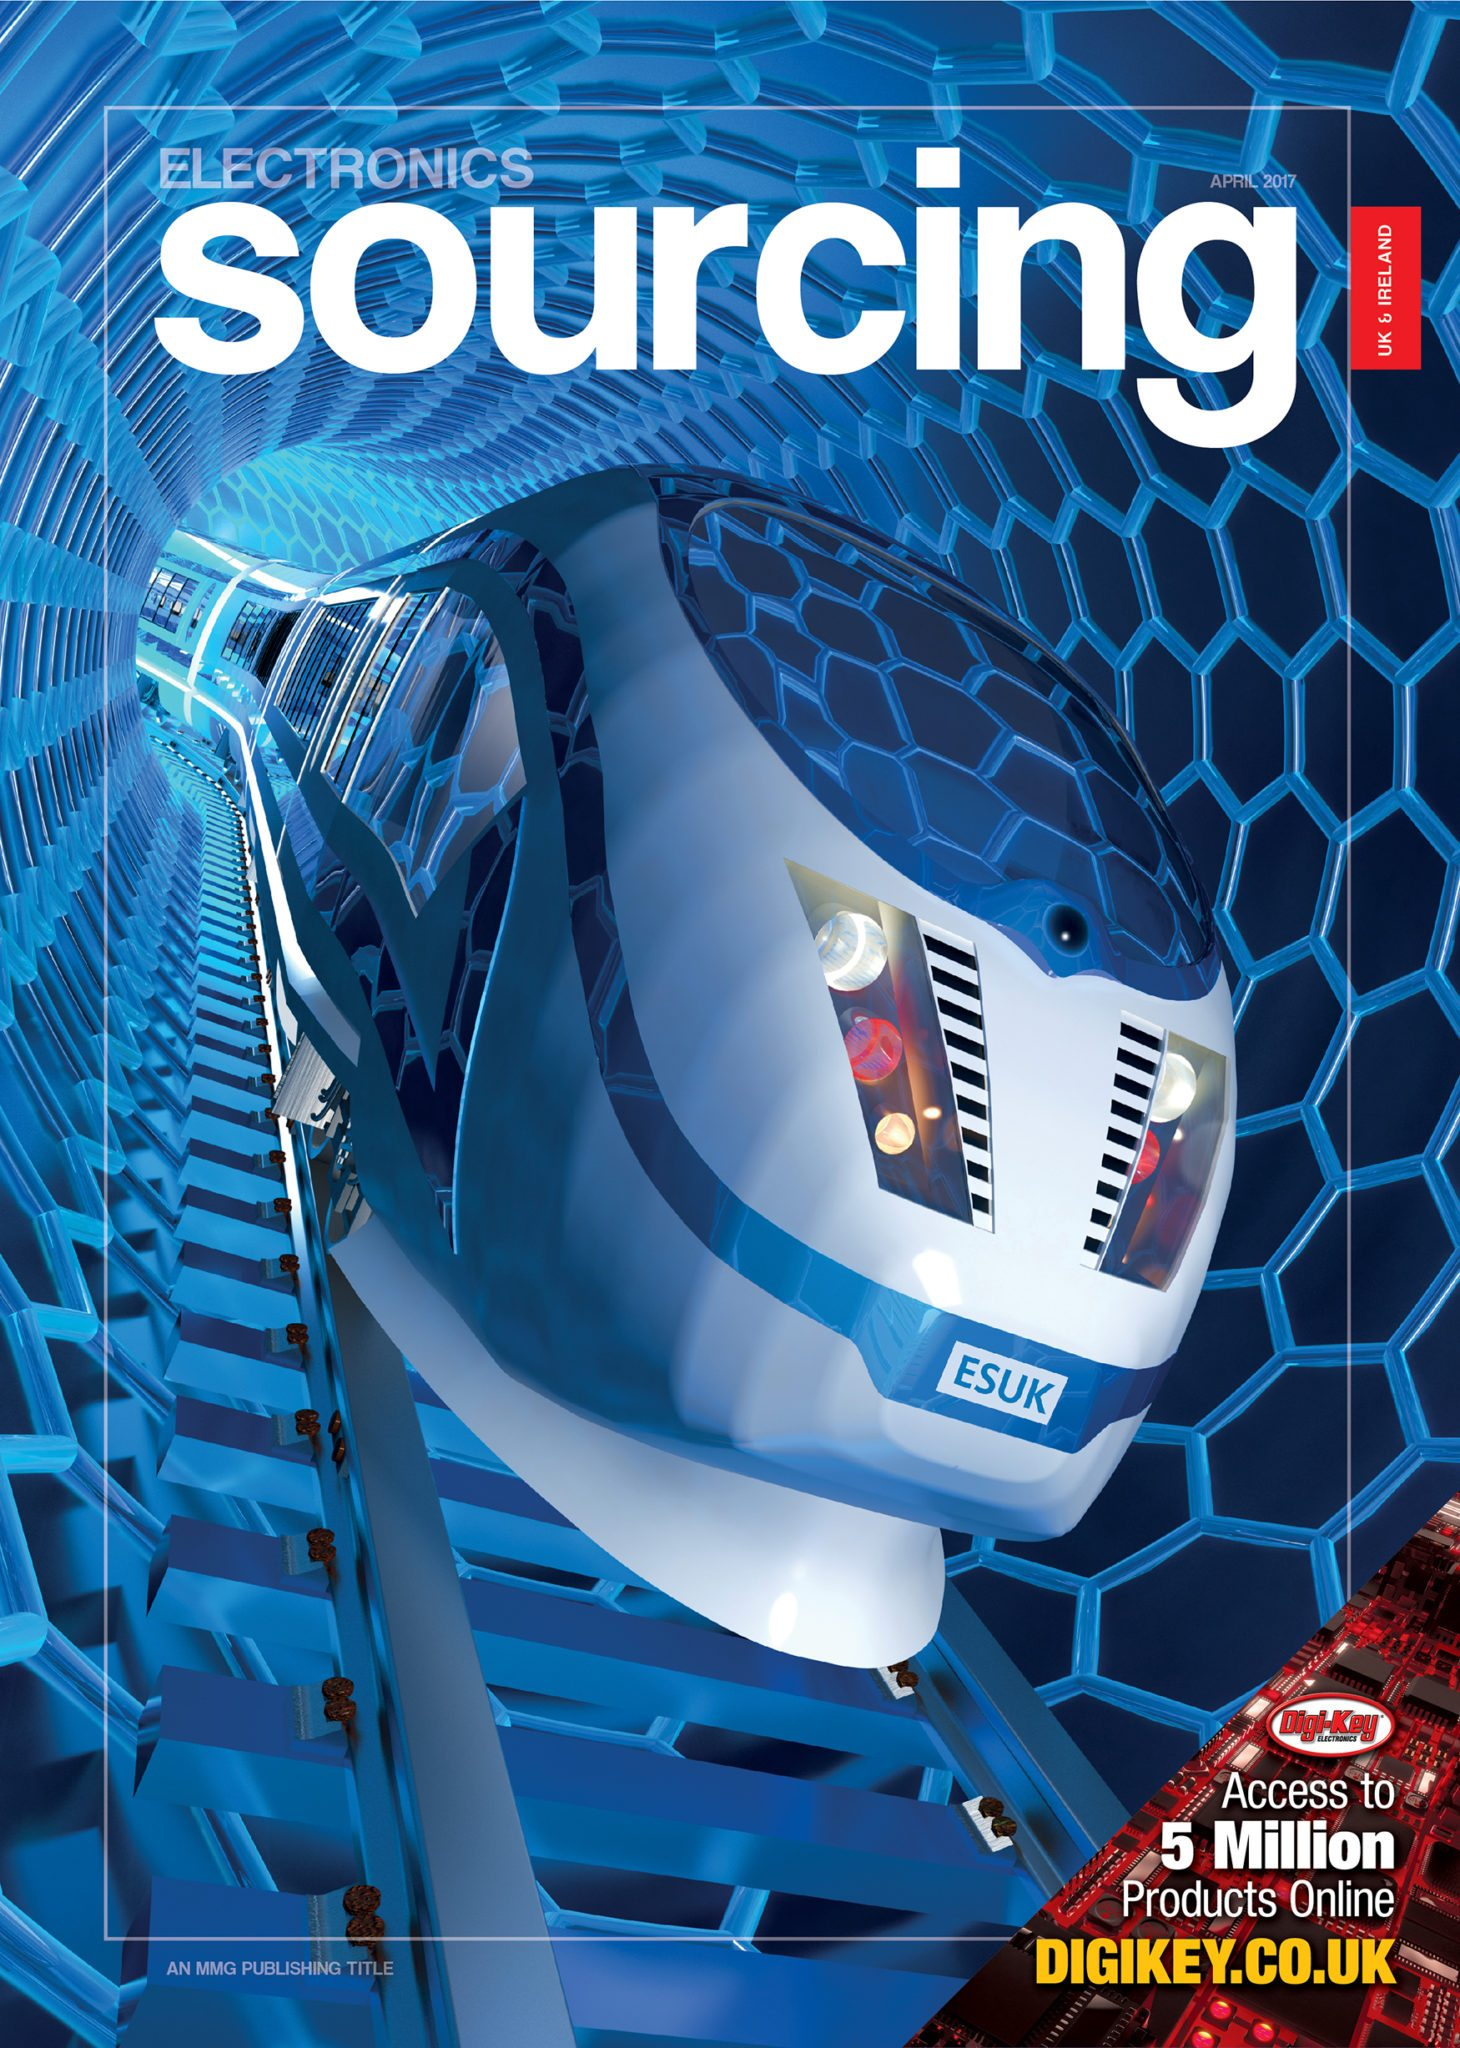 Electronics Sourcing Storm Electronica April 2012 2017 News Displays Rail Best Of British And Buyers Guides